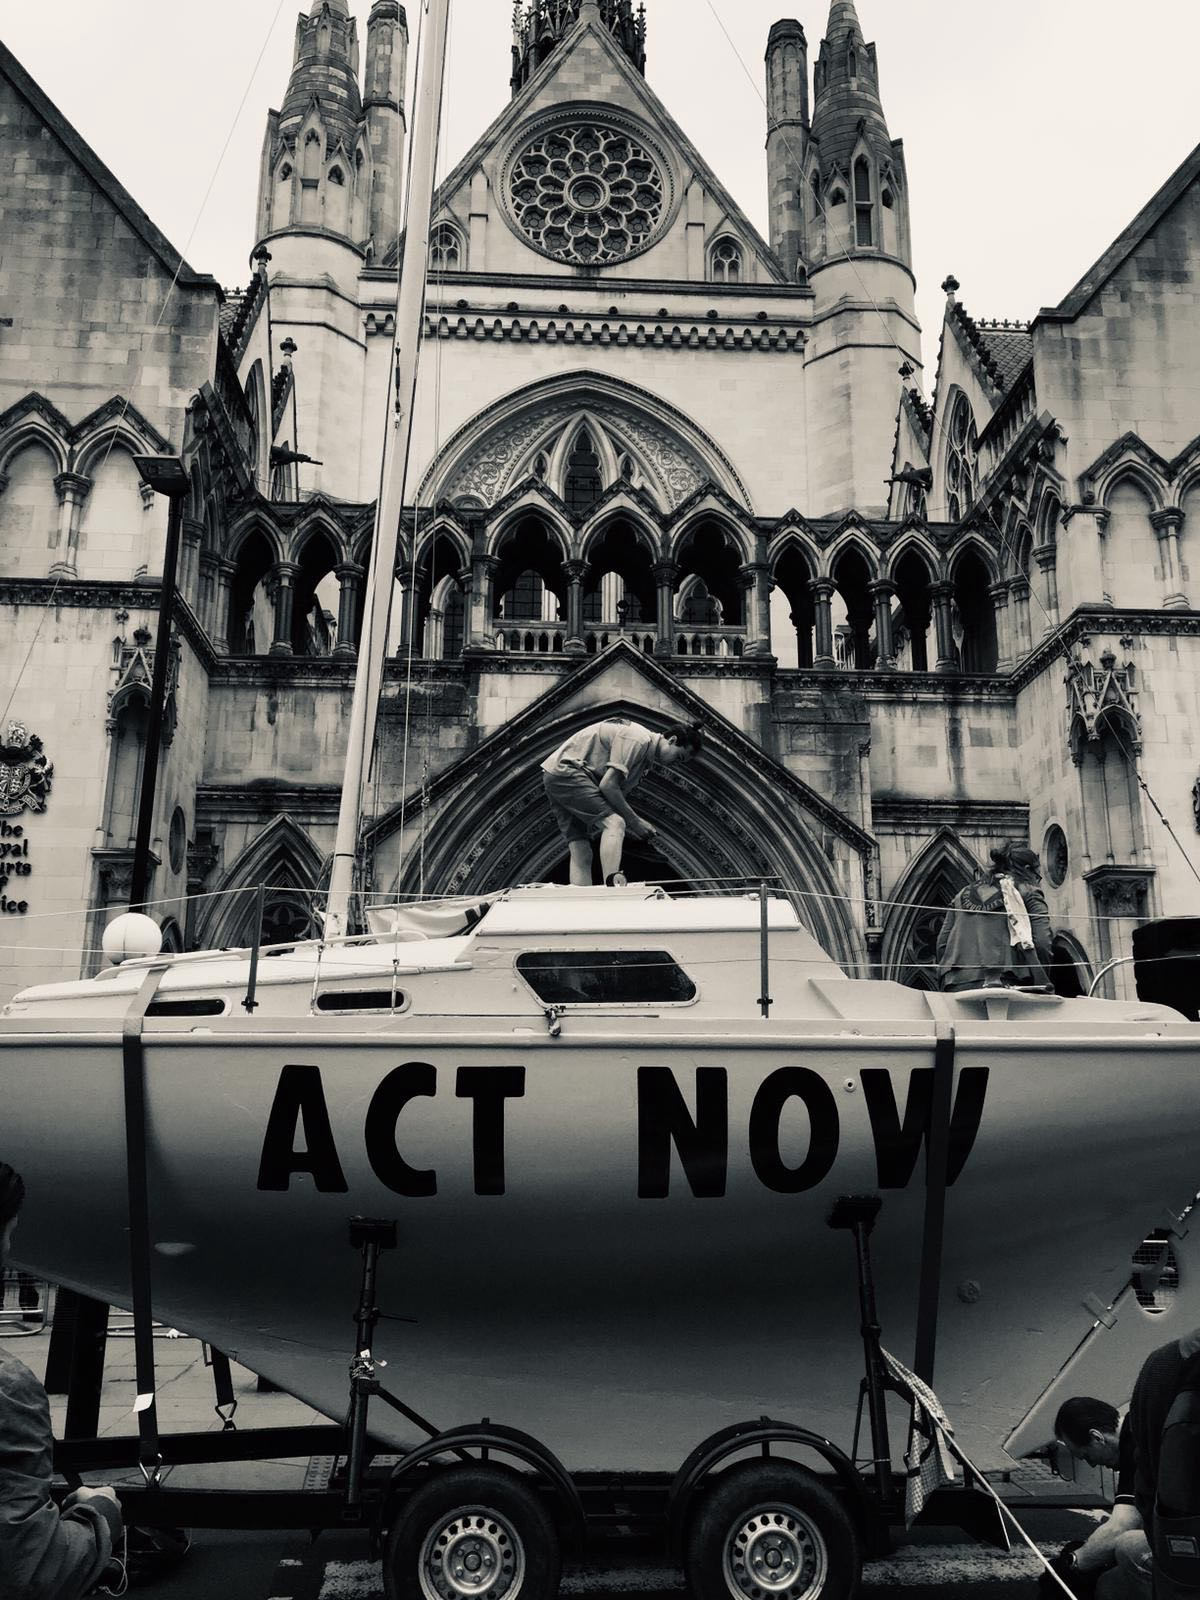 An XR Boat outside the Royal Courts of Justice, Summer 2019.